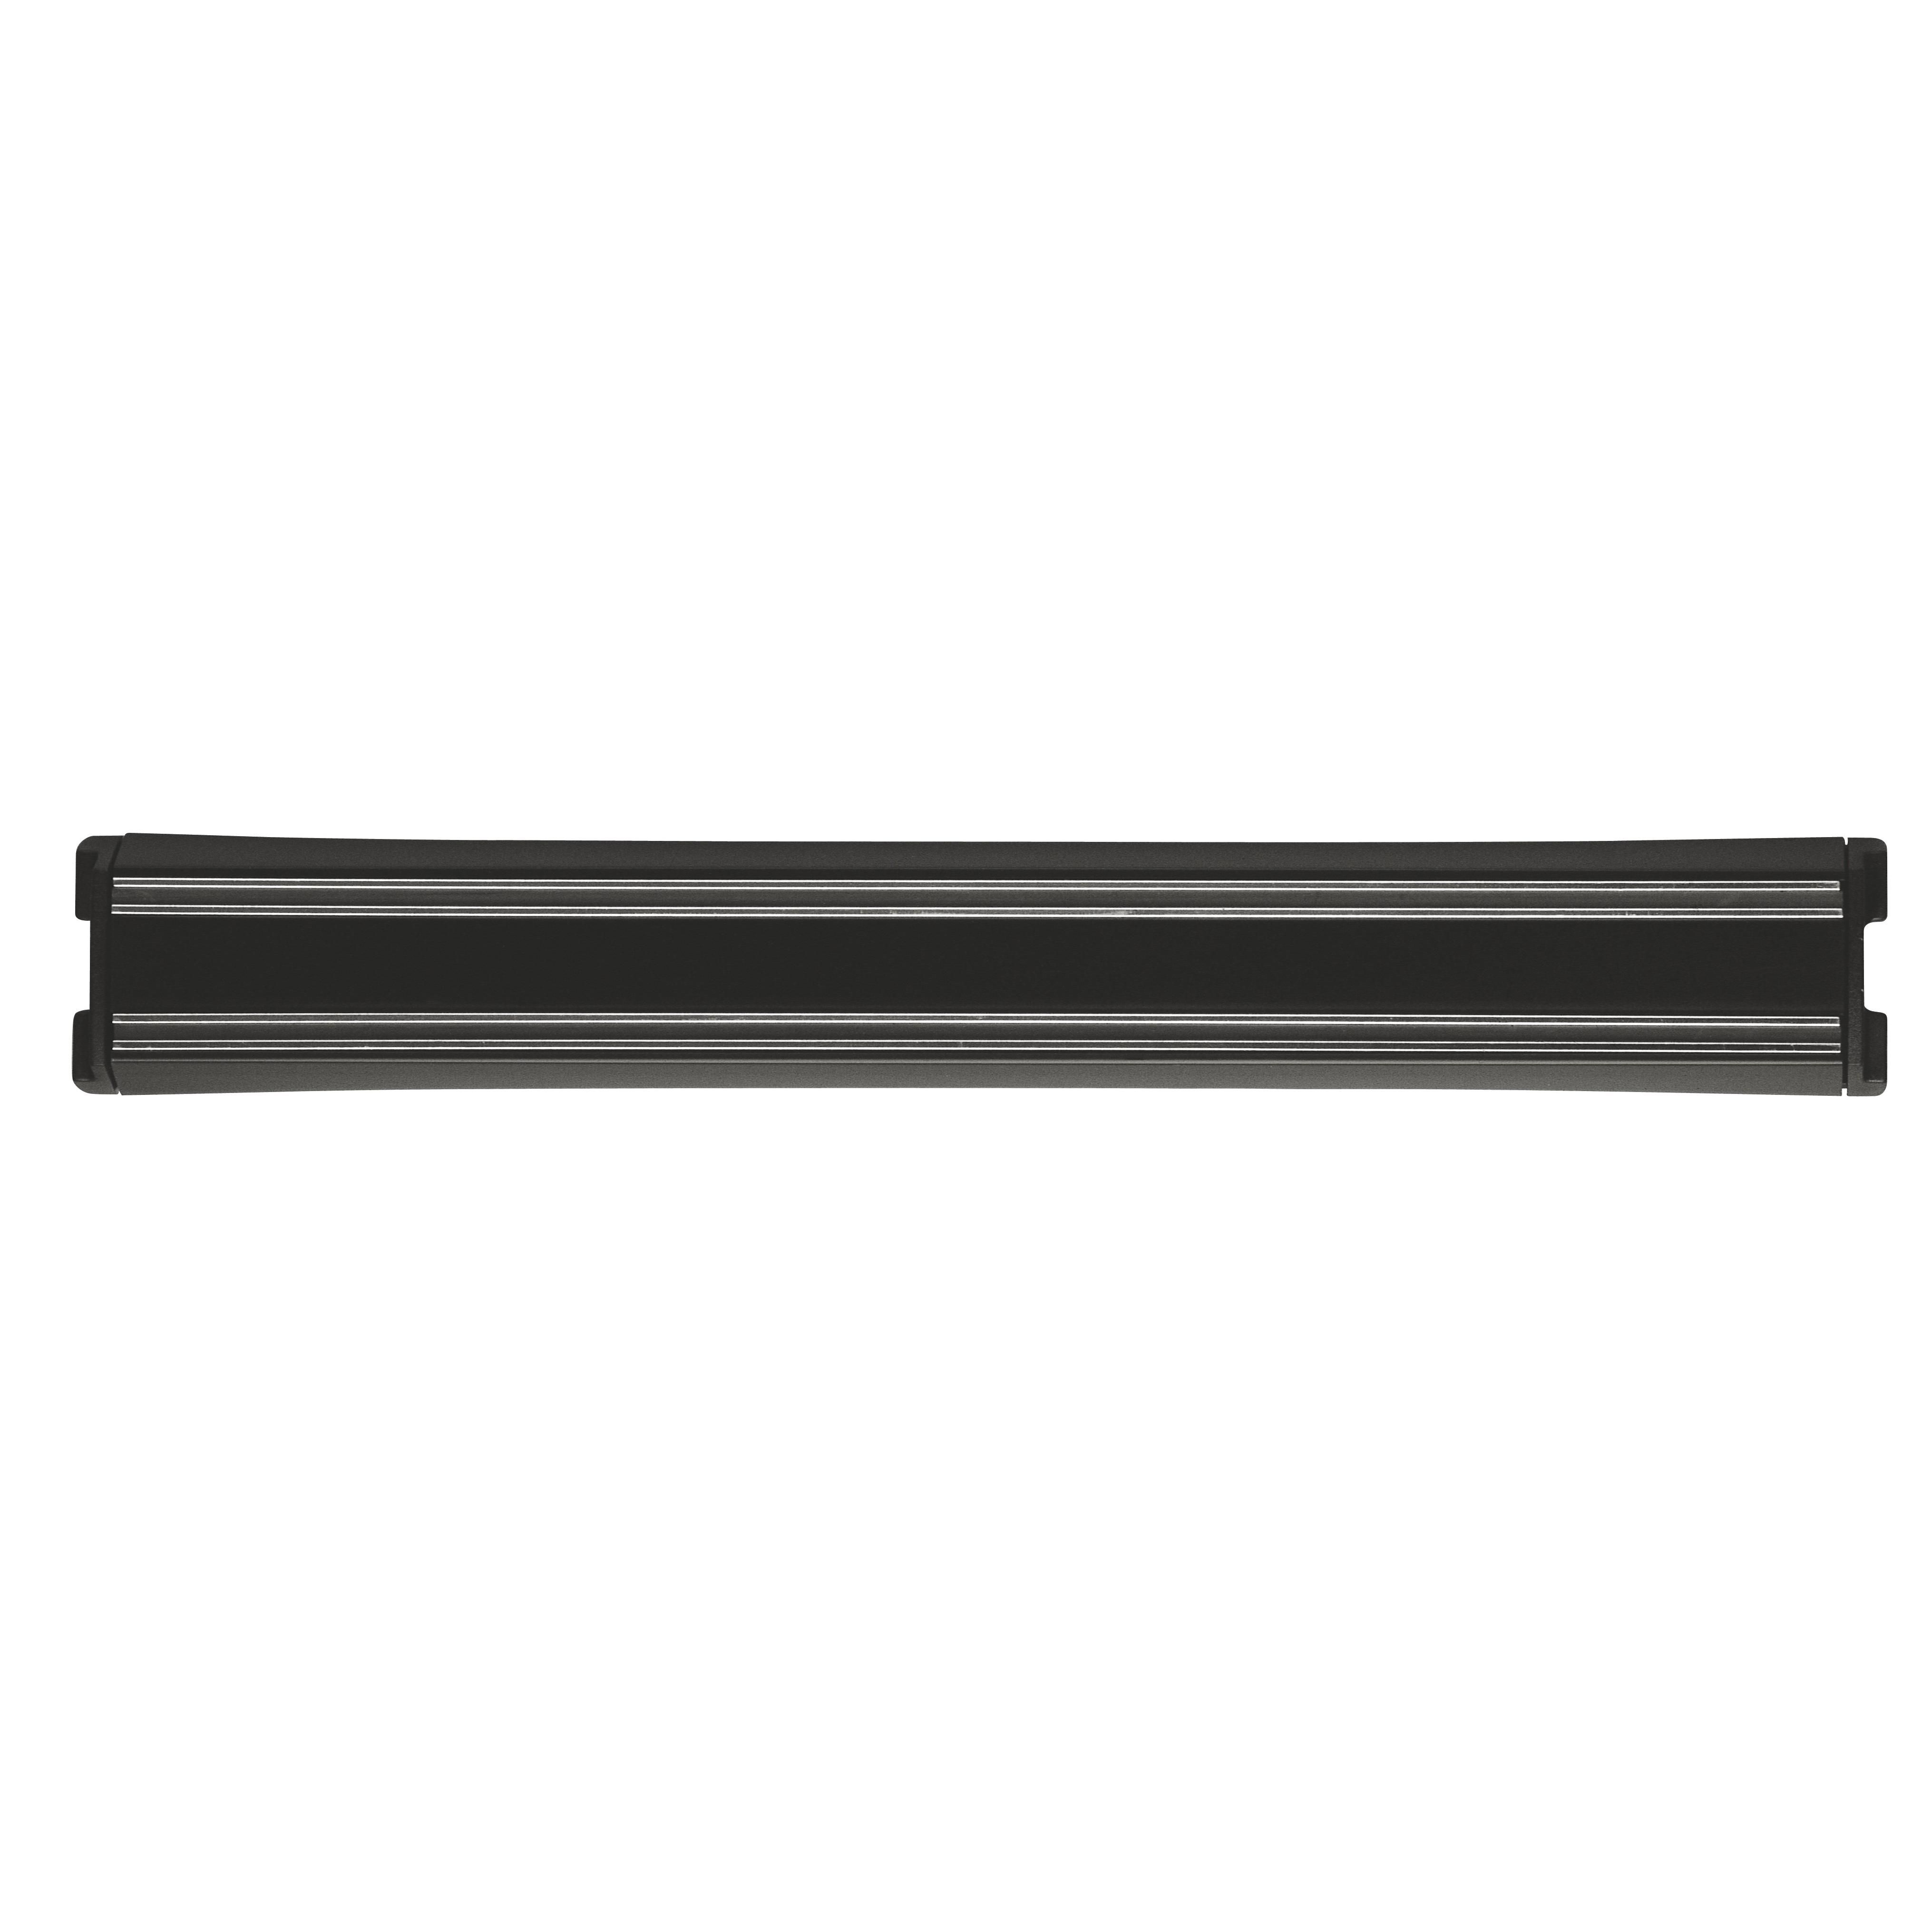 Zwilling 32621-300 Magnetic bar